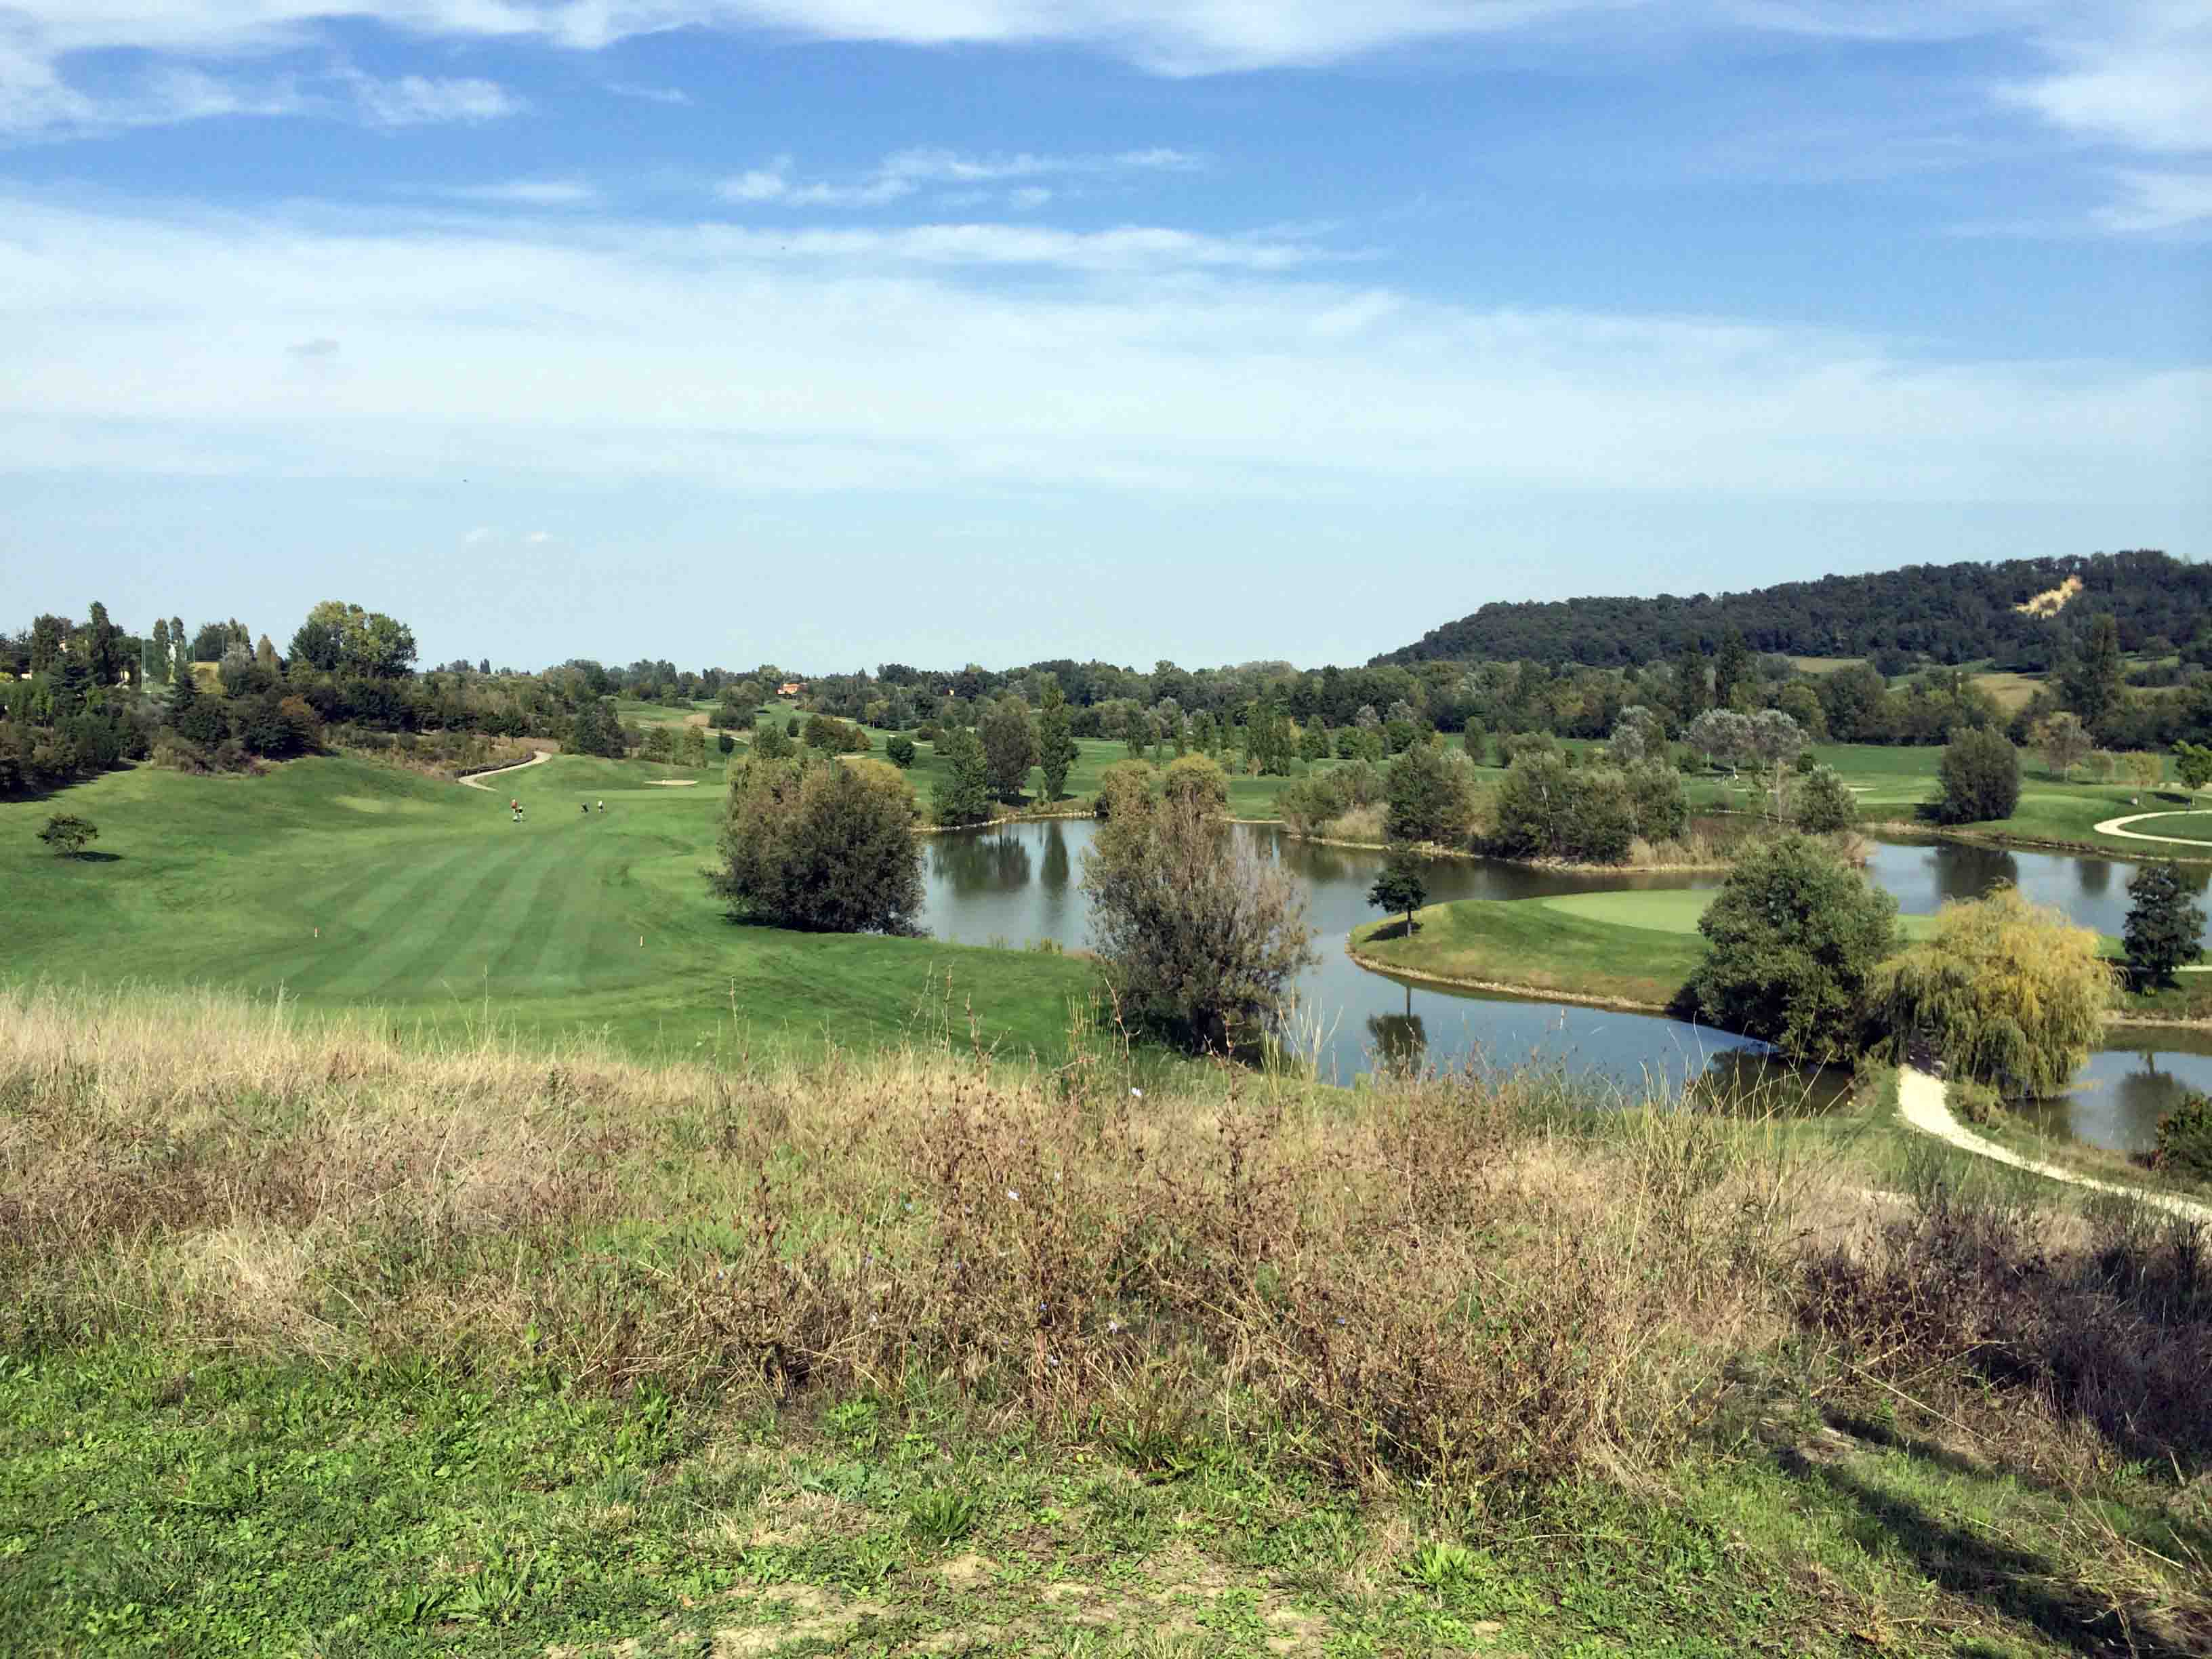 Golf Club Le Fonti Outside Bologna, Italy